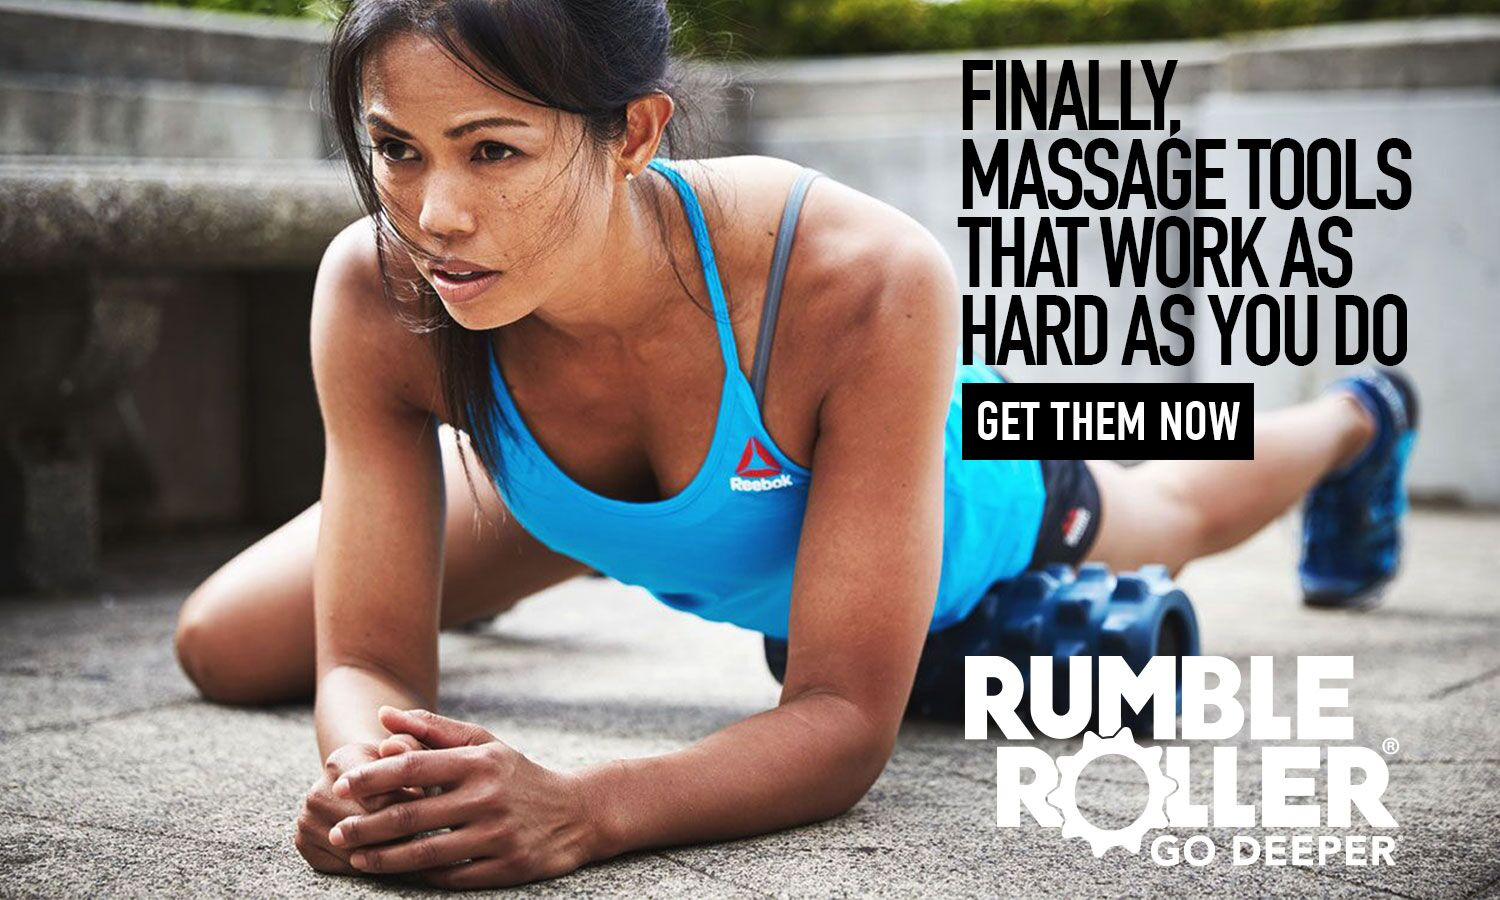 Rumble Roller training foam roll